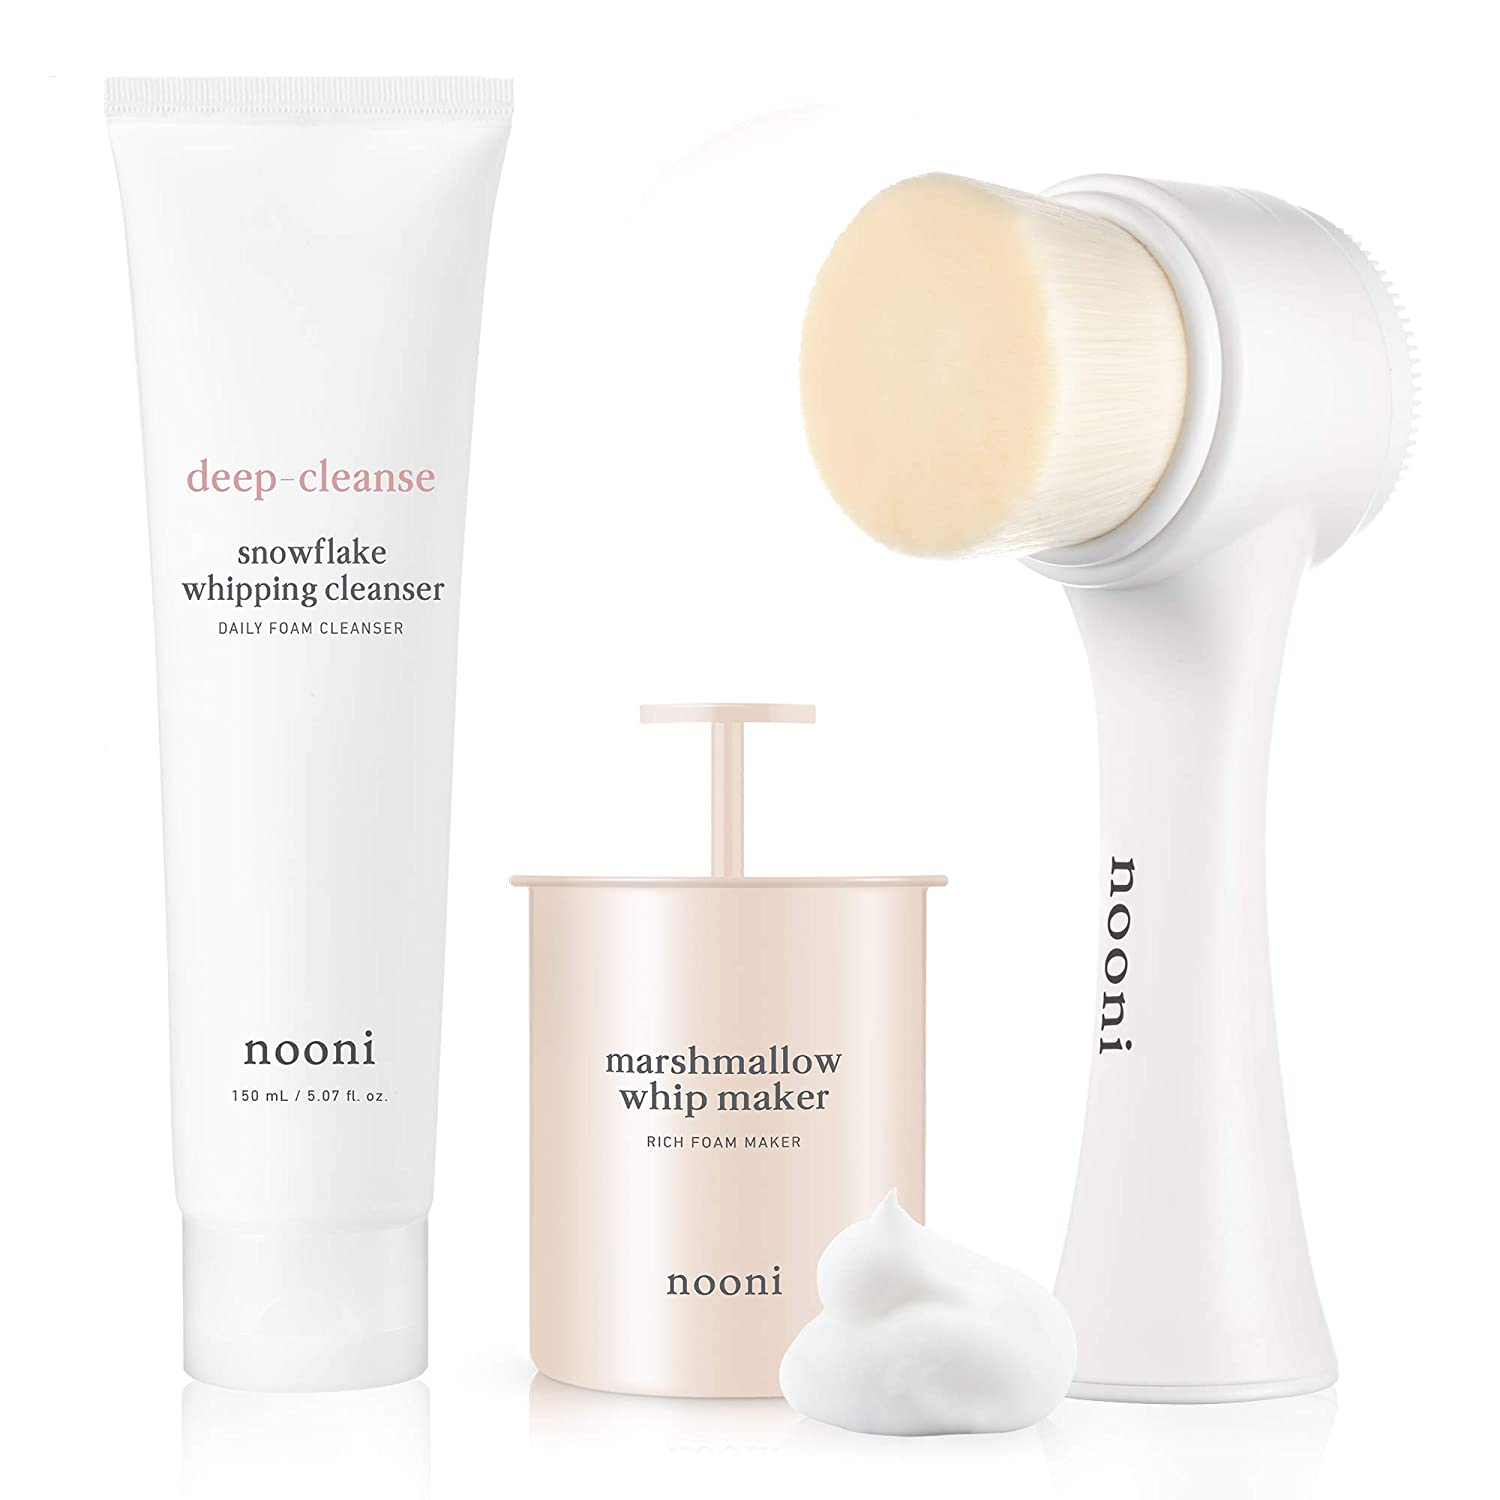 NOONI Marshmallow Whip Maker + Pore Cleansing Dual Brush + Snowflake Whipping Cleanser Bundle